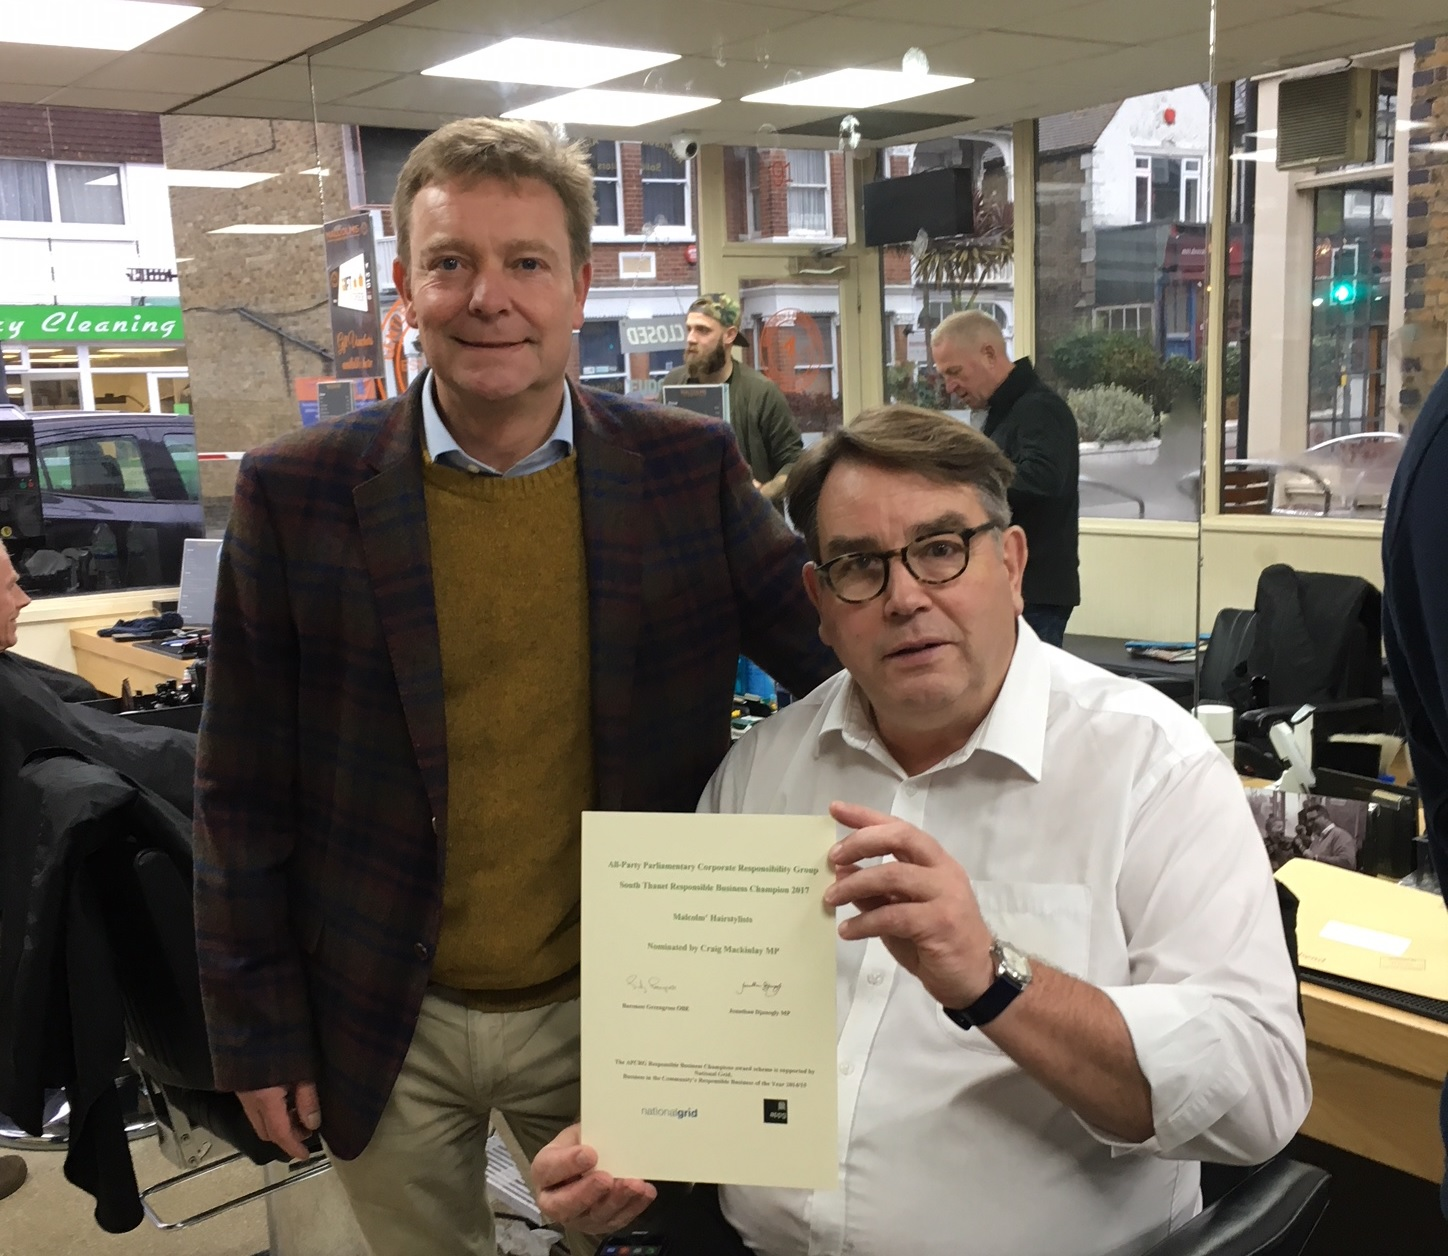 CM with Malcolm - South Thanet Constituency Responsible Business Champion 2017 Nov17.jpg